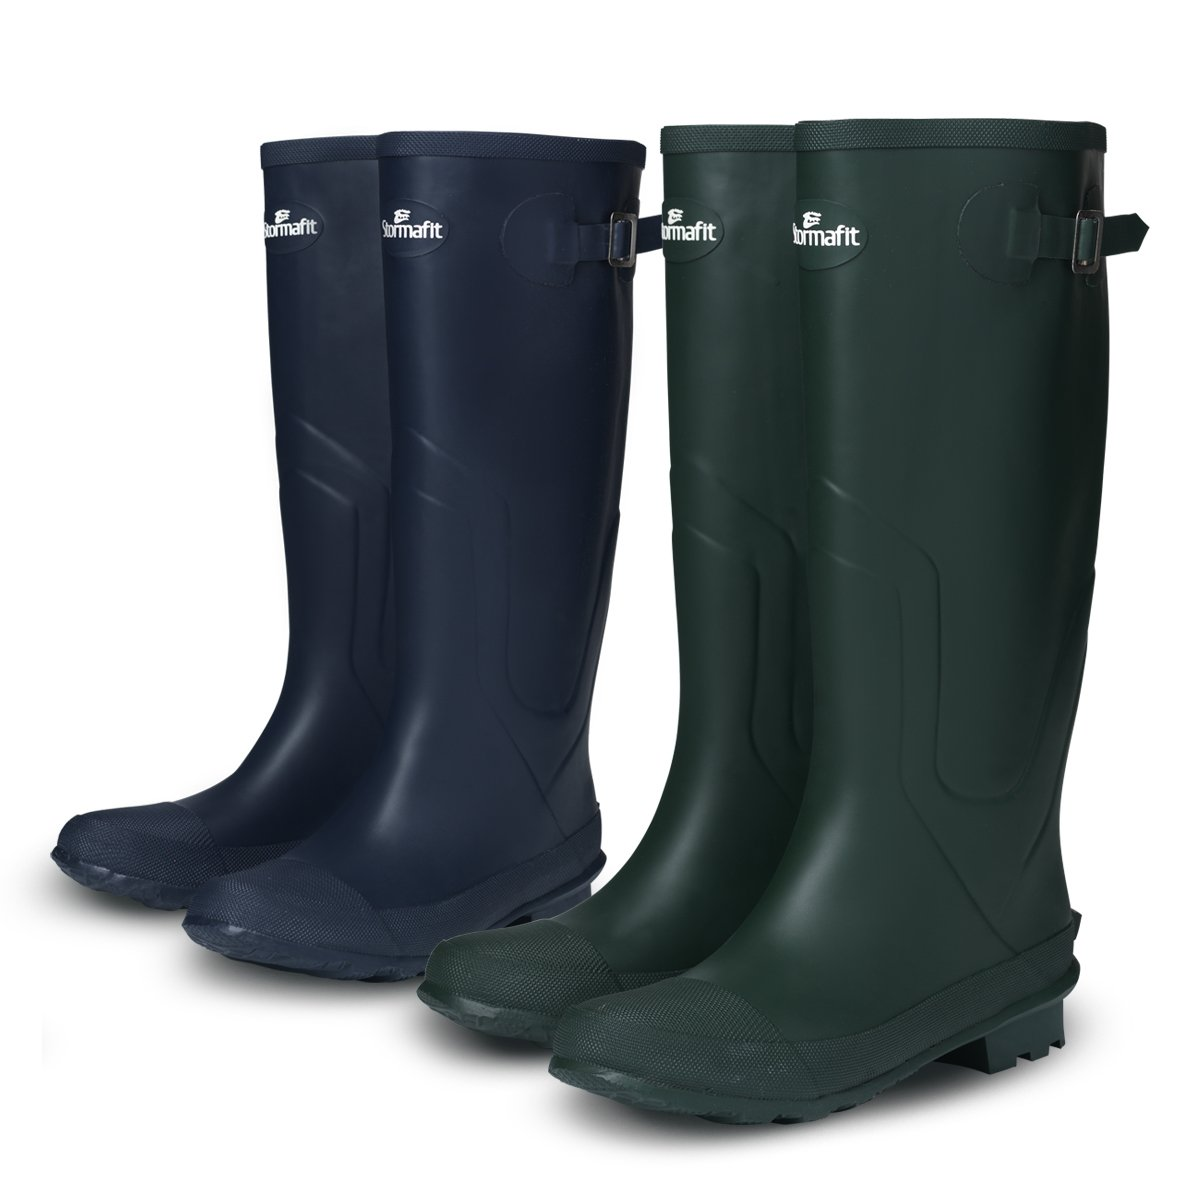 Stormafit Jackdaw Huntsman Premium Traditional Boot: Amazon.co.uk: Sports &  Outdoors